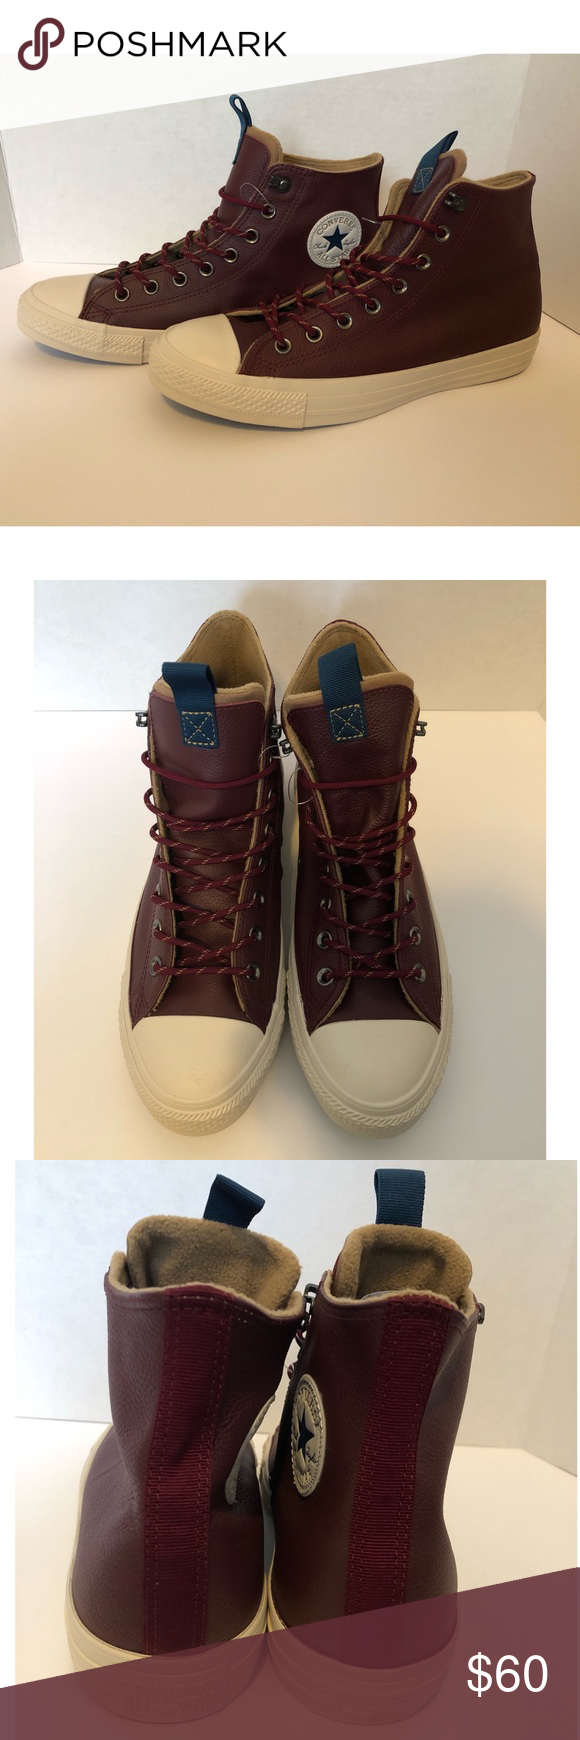 Inapropiado Banquete nadar  Converse All Star Desert Storm Leather High Tops | Leather high tops, Converse  all star, Converse